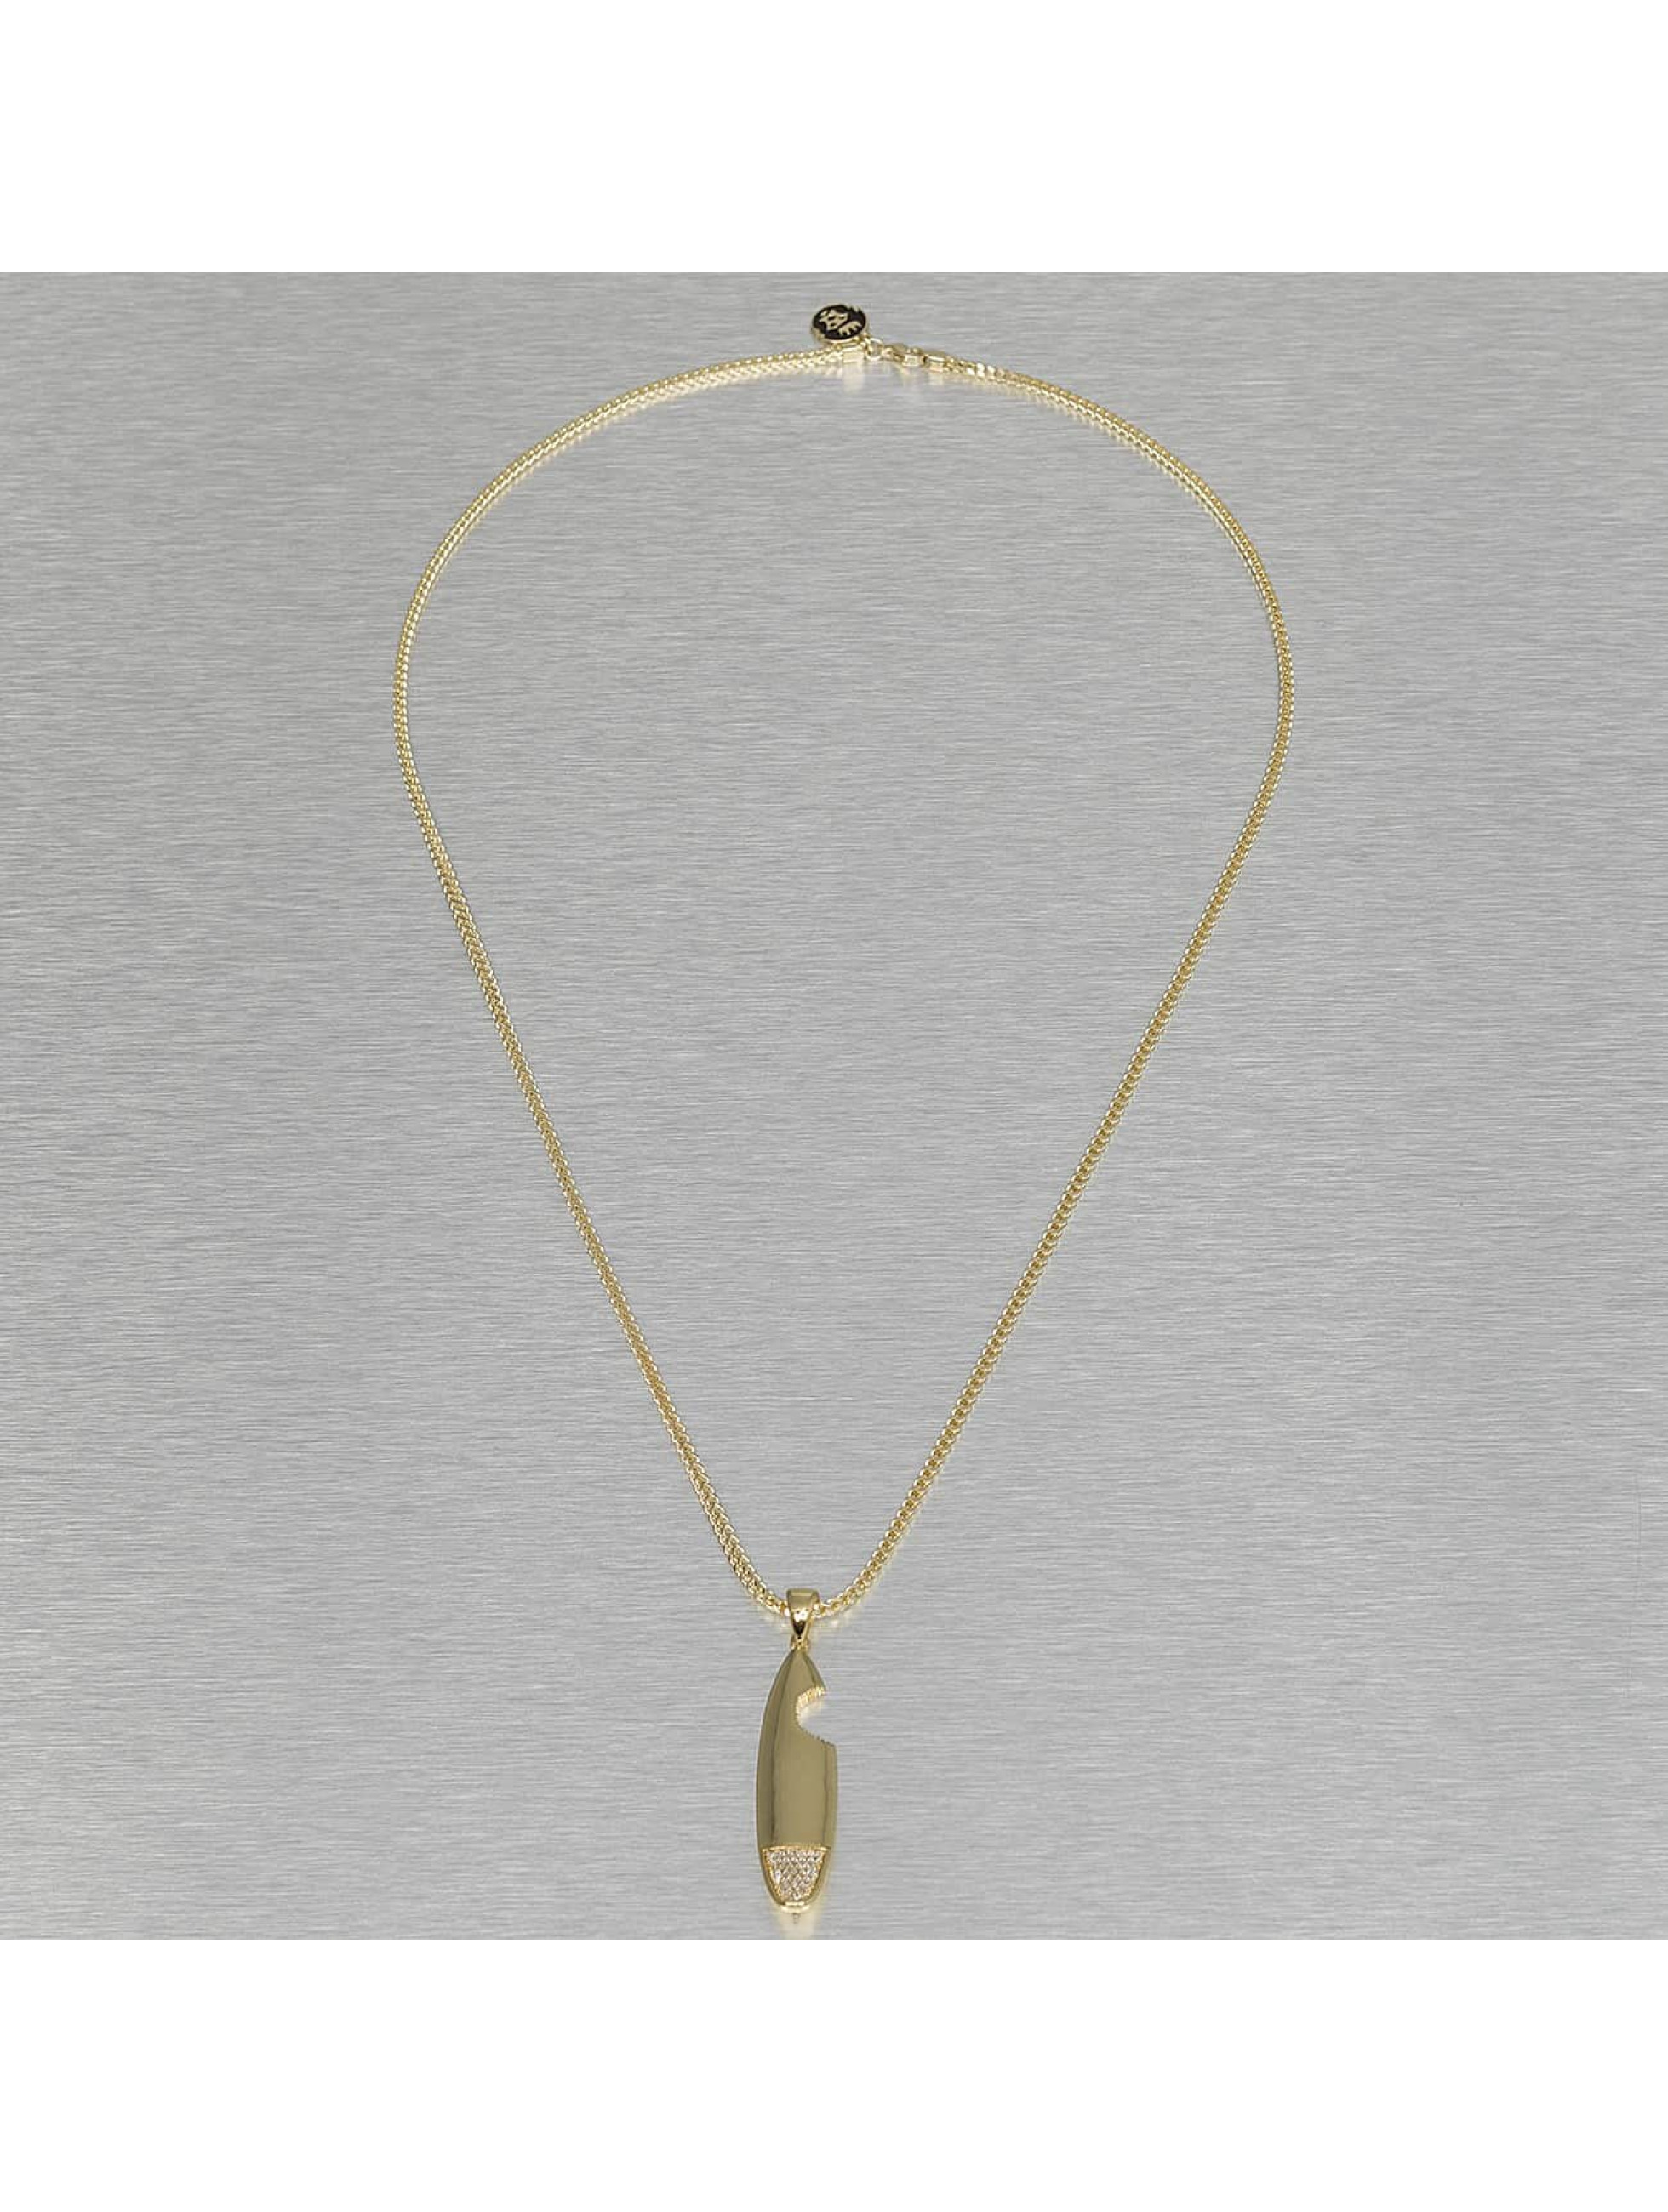 KING ICE Necklace Shark Bite Surfboard gold